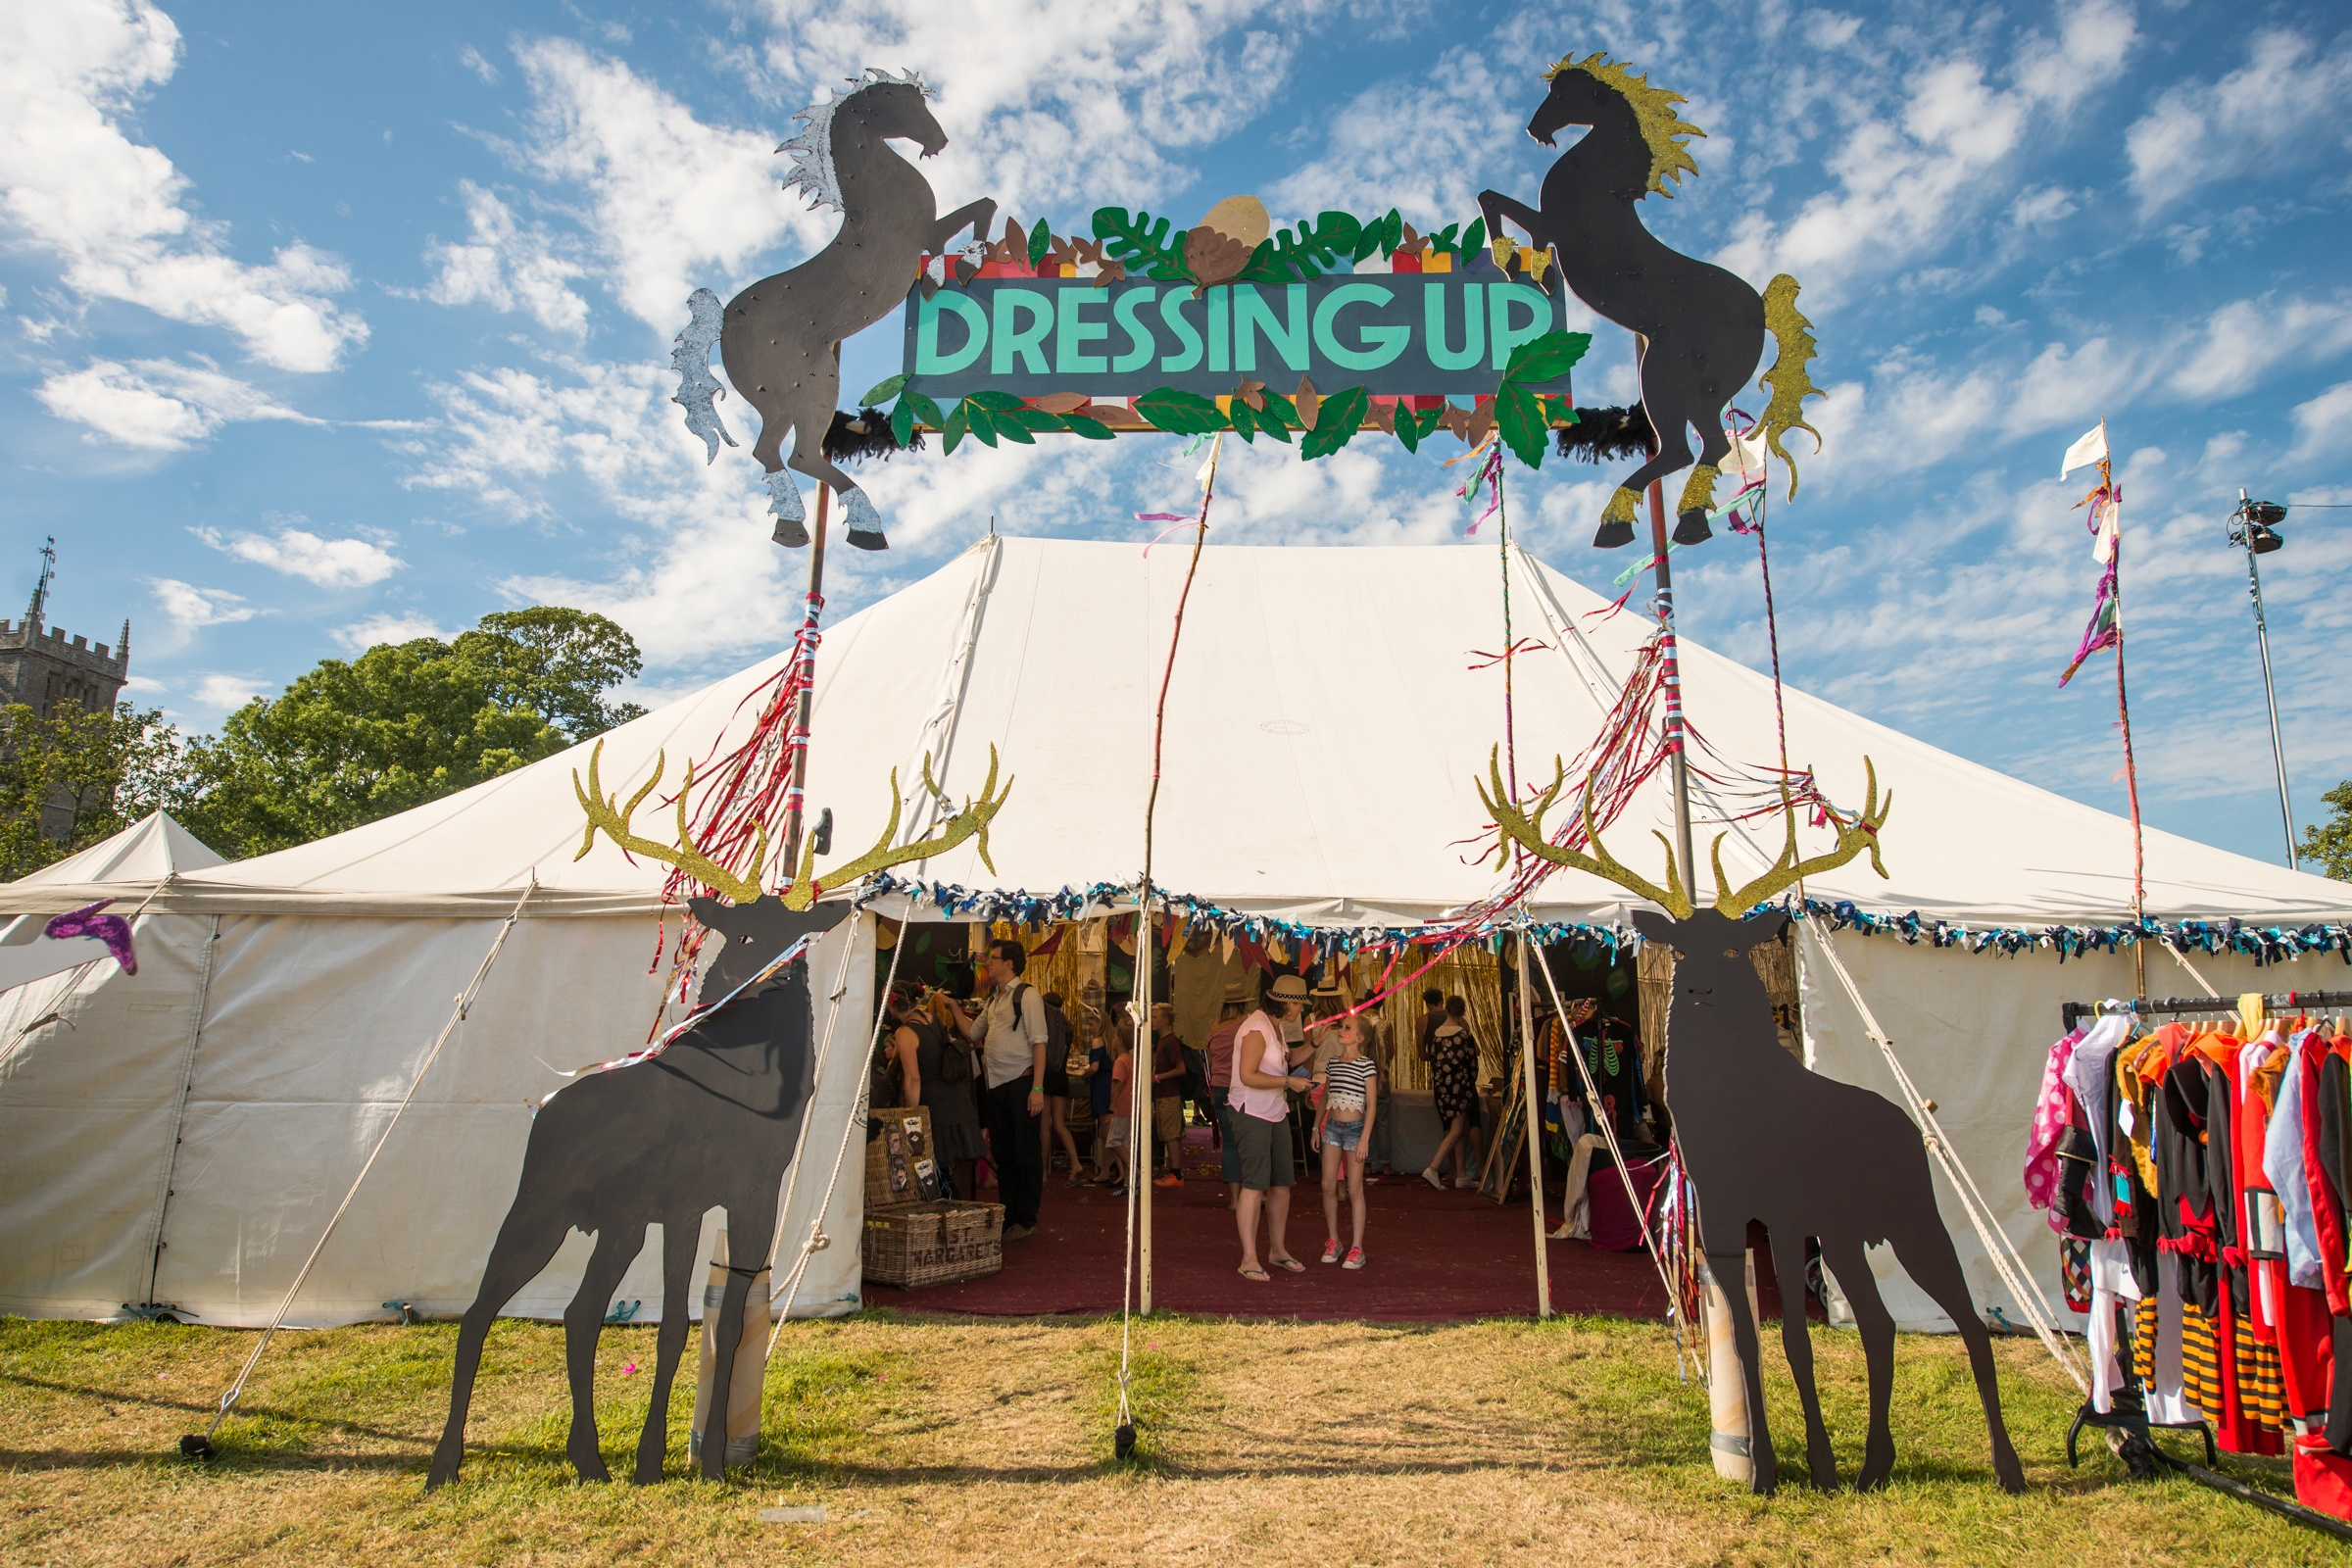 Dressing Up Tent image